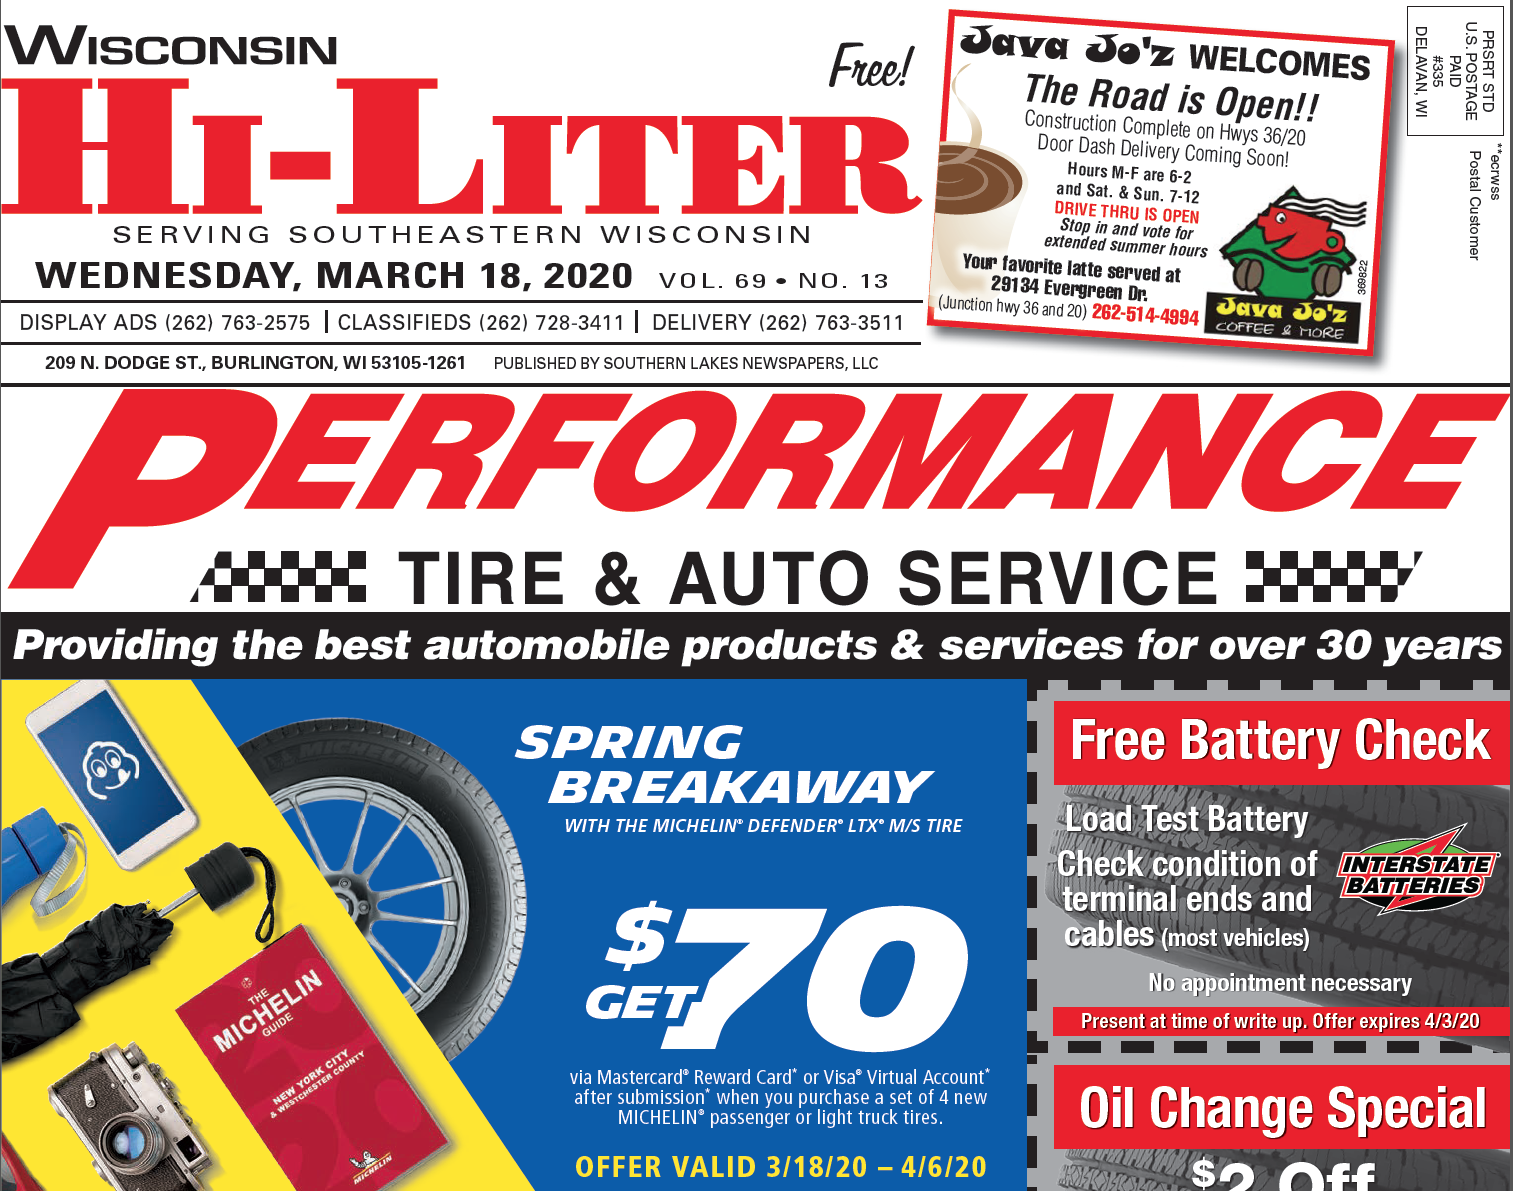 Wisconsin Hiliter for 3/18/20